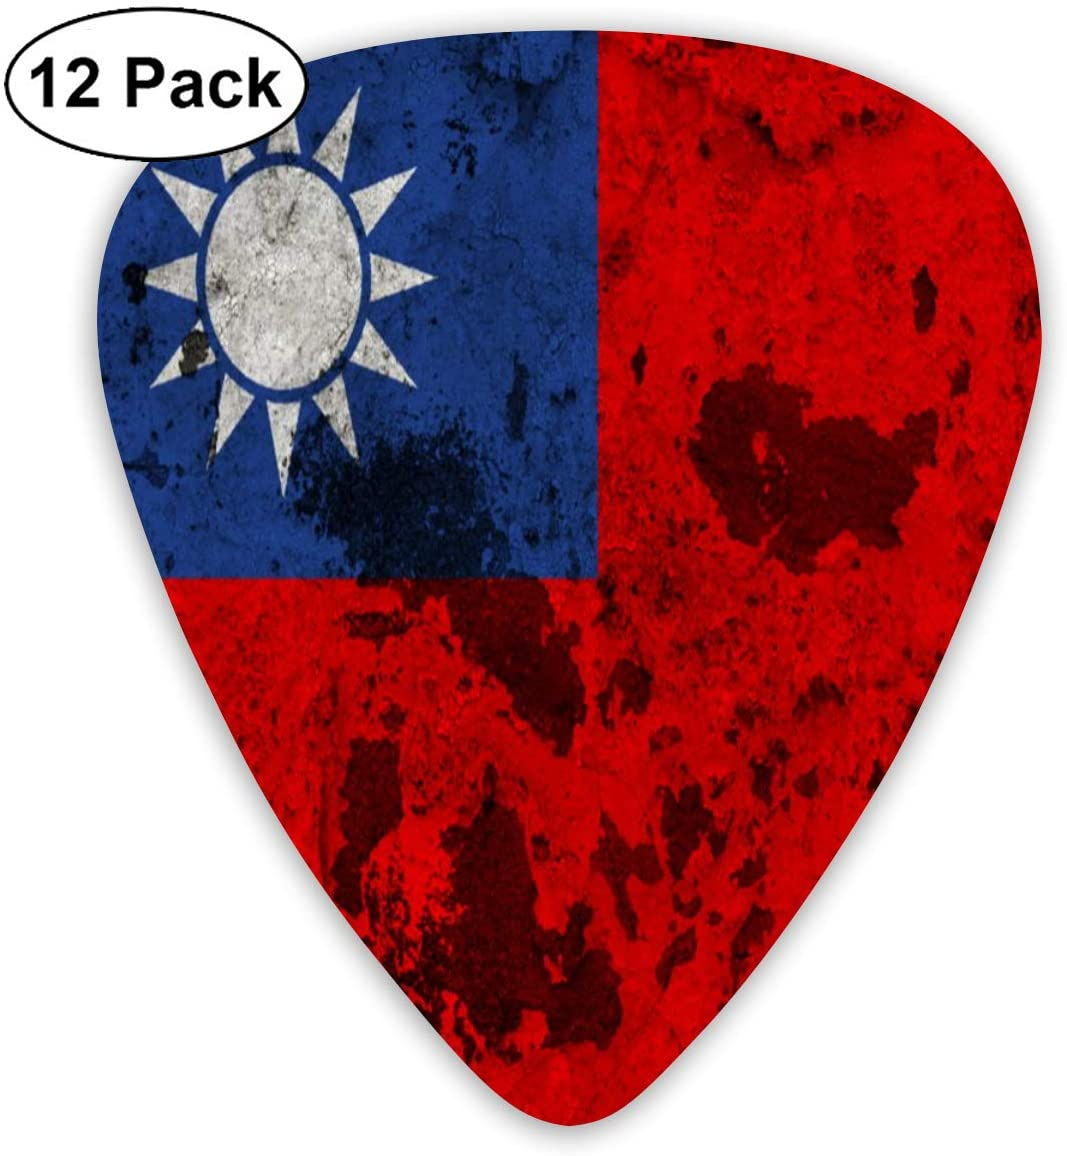 XKAWPC Vintage Taiwanese Flag Personalized Guitar Picks 12pcs,Unique Guitar Gift for Your Electric, Acoustic, Or Bass Guitar Includes 0.46, 0.71, 0.96mm